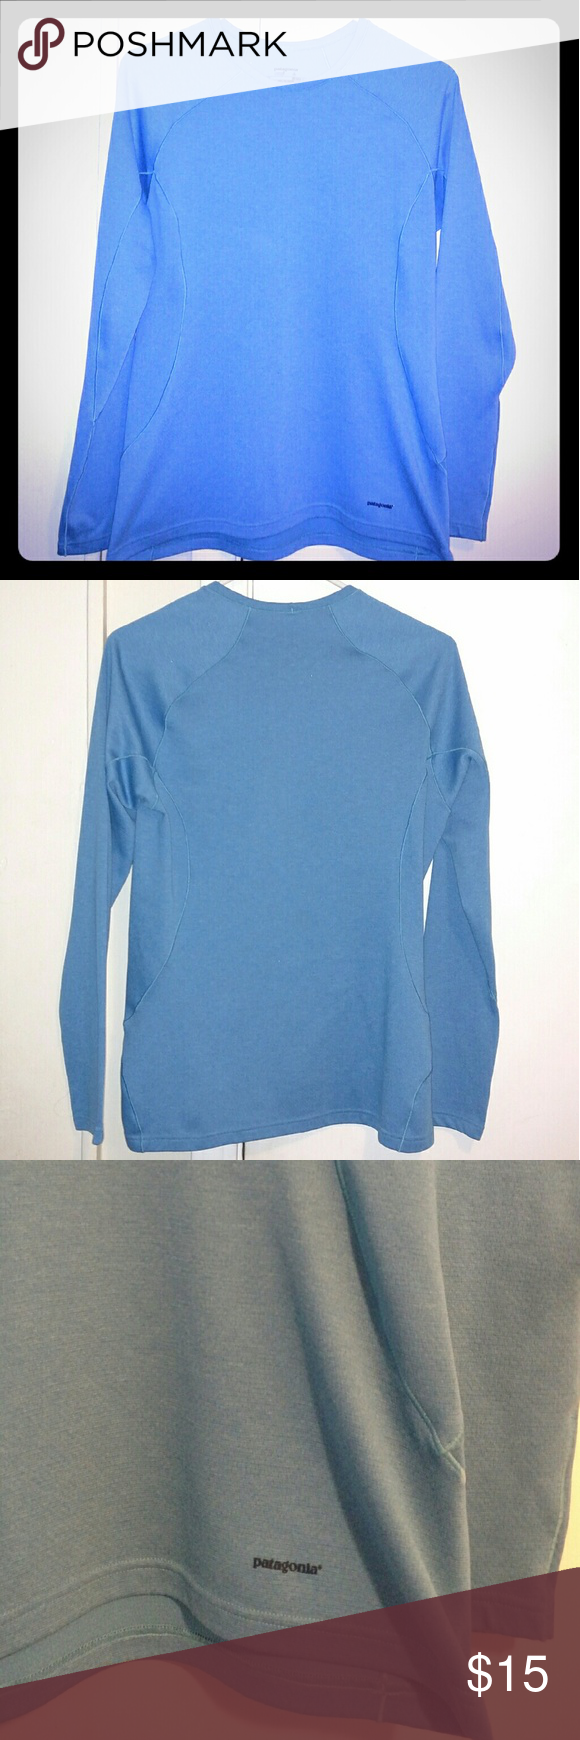 Patagonia Active Top Women's size Medium Patagonia mid weight active / hiking / backpacking LS shirt. Slightly looser fit and a thicker, warmer material then a running type shirt. Love this pretty sky blue color. EUC, no visible flaws, normal wash & wear. Perfect for your cold weather outdoor adventures! Patagonia Tops Tees - Long Sleeve